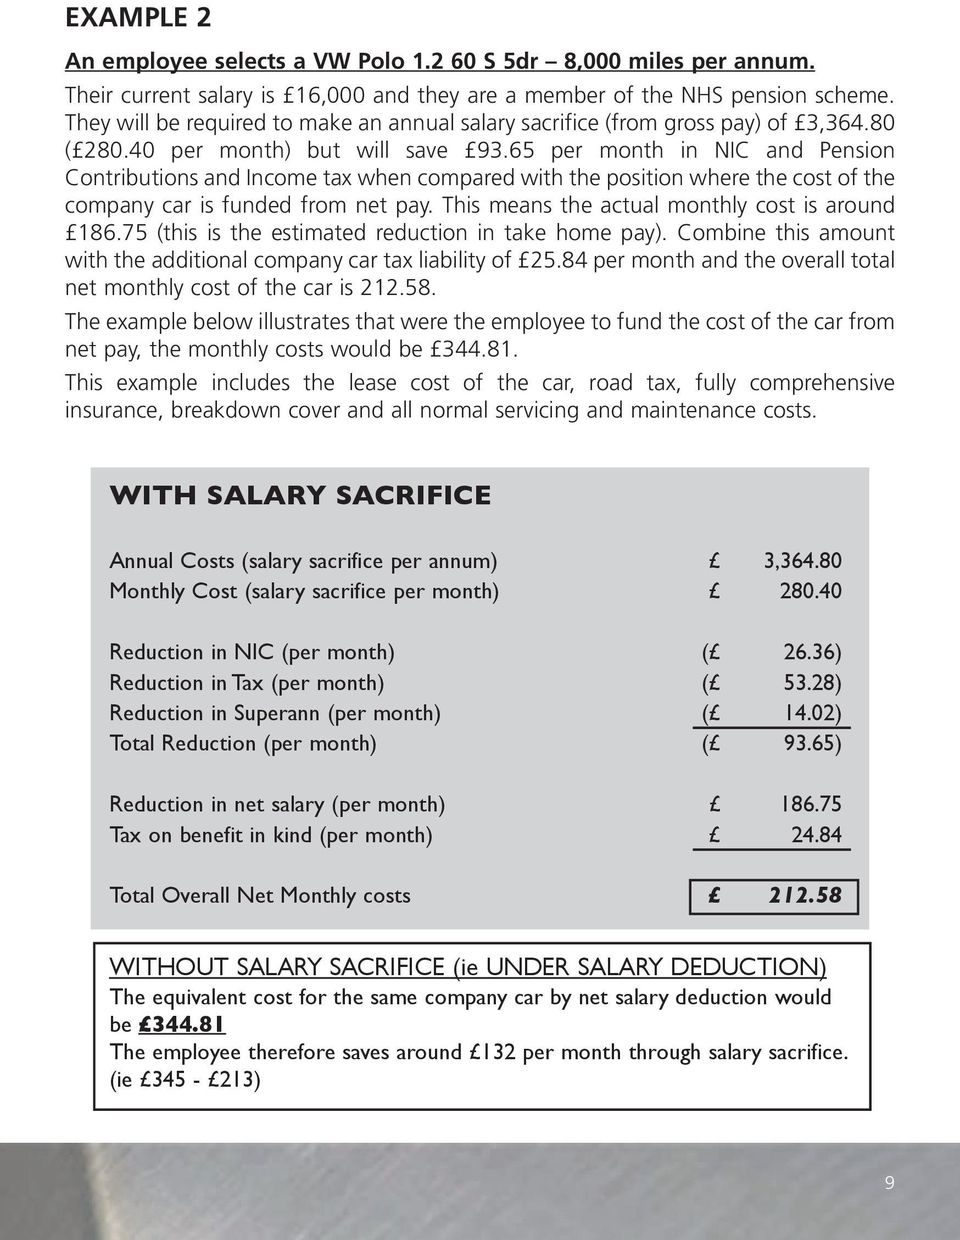 65 per month in NIC and Pension Contributions and Income tax when compared with the position where the cost of the company car is funded from net pay. This means the actual monthly cost is around 186.